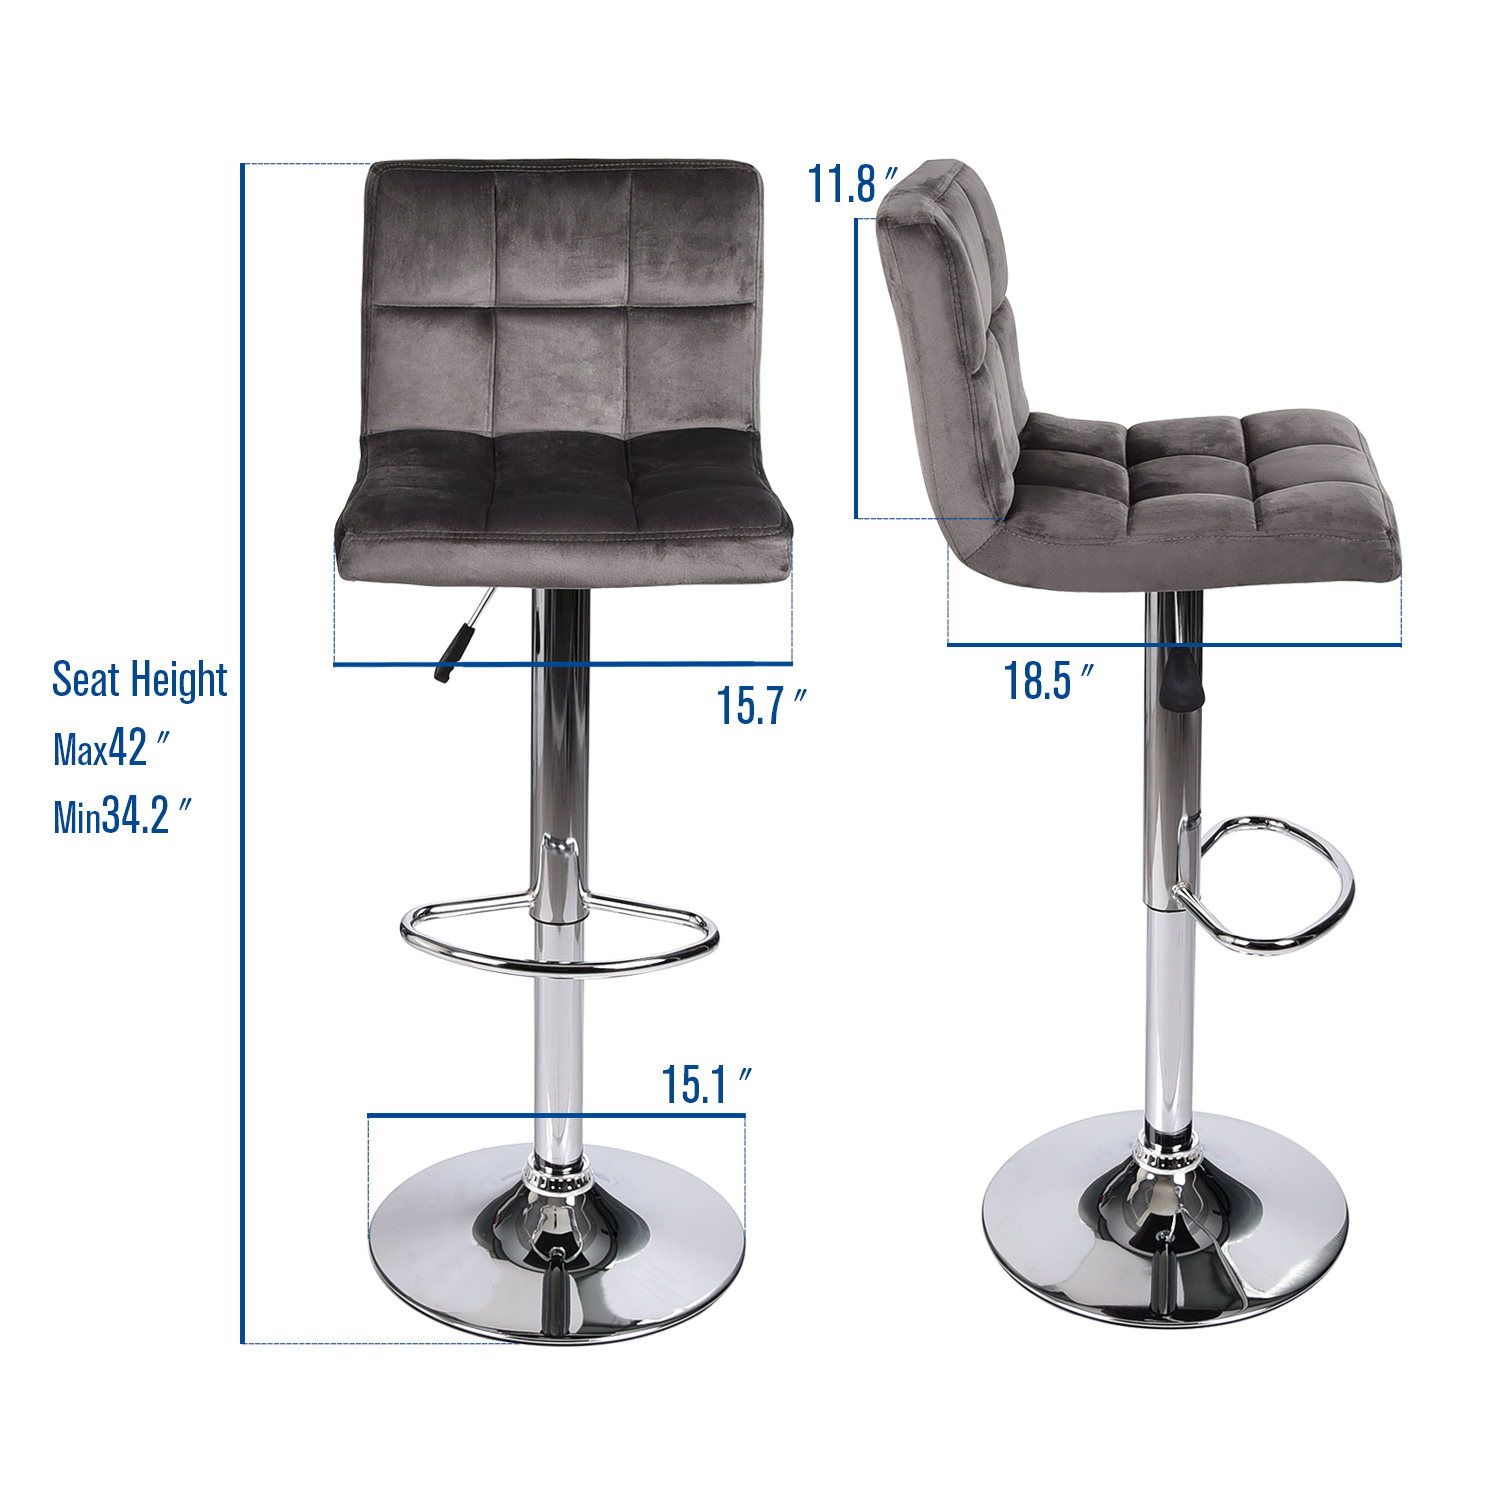 Surprising Details About Set Of 2 Bar Stool Velvet Fabric Swivel Hydraulic Adjustable Counter Chair Gray Theyellowbook Wood Chair Design Ideas Theyellowbookinfo